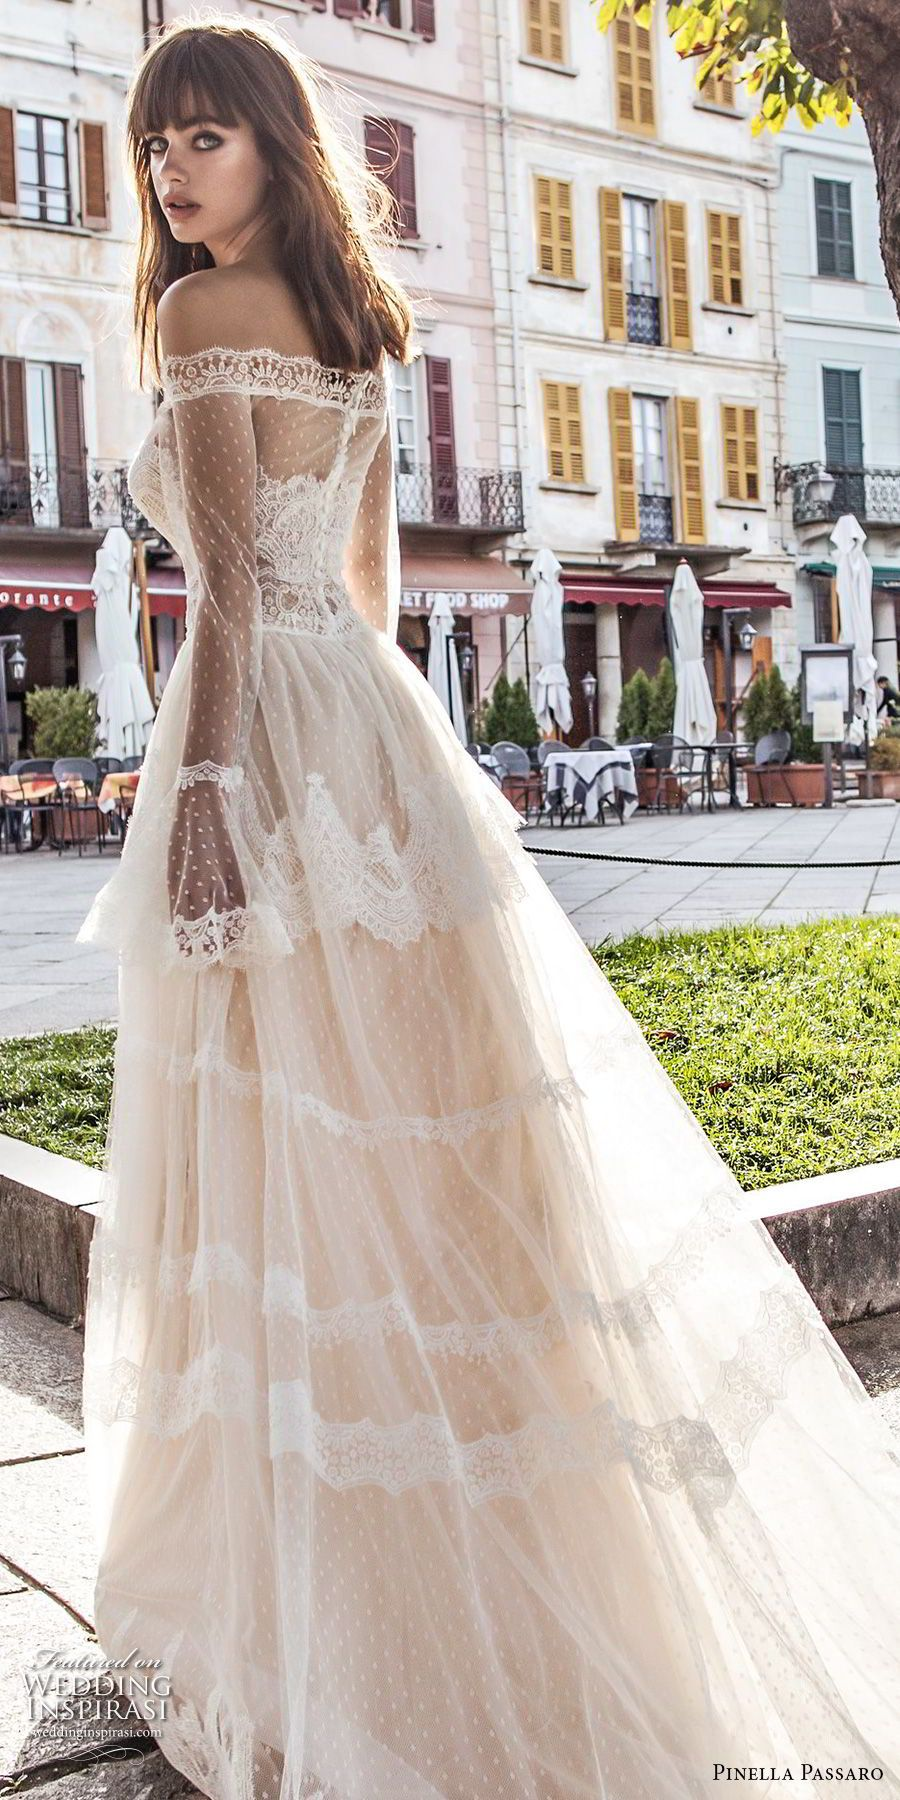 Pinella passaro wedding dresses in hairs pinterest